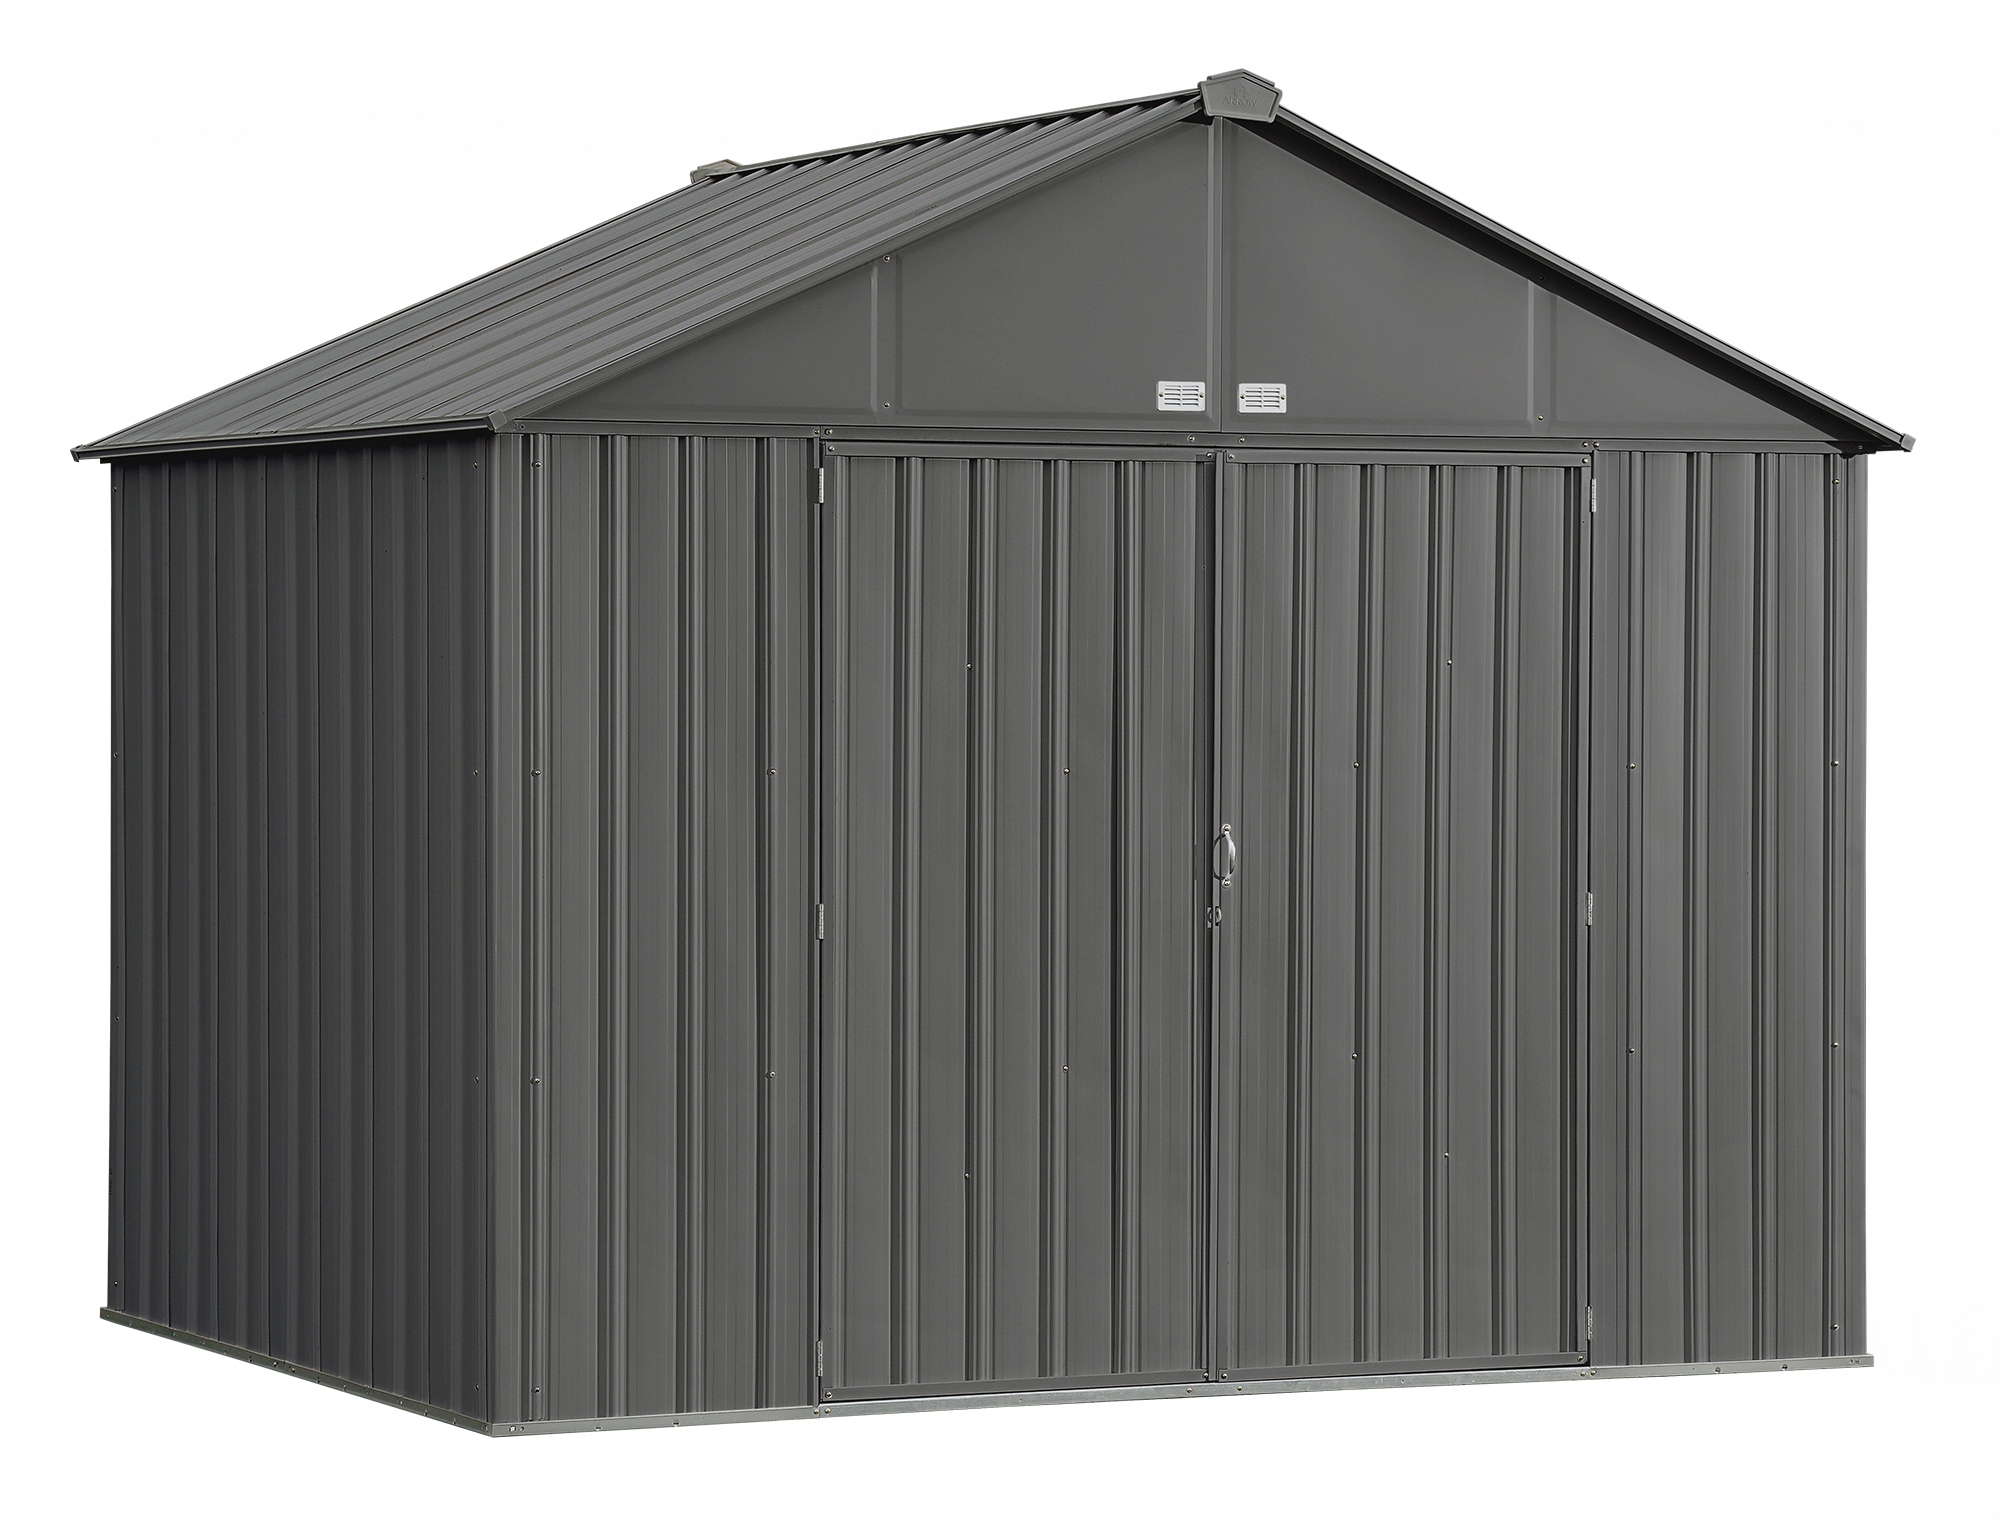 EZEE Shed Steel Storage 10 x 8 ft. Galvanized Extra High Gable Charcoal